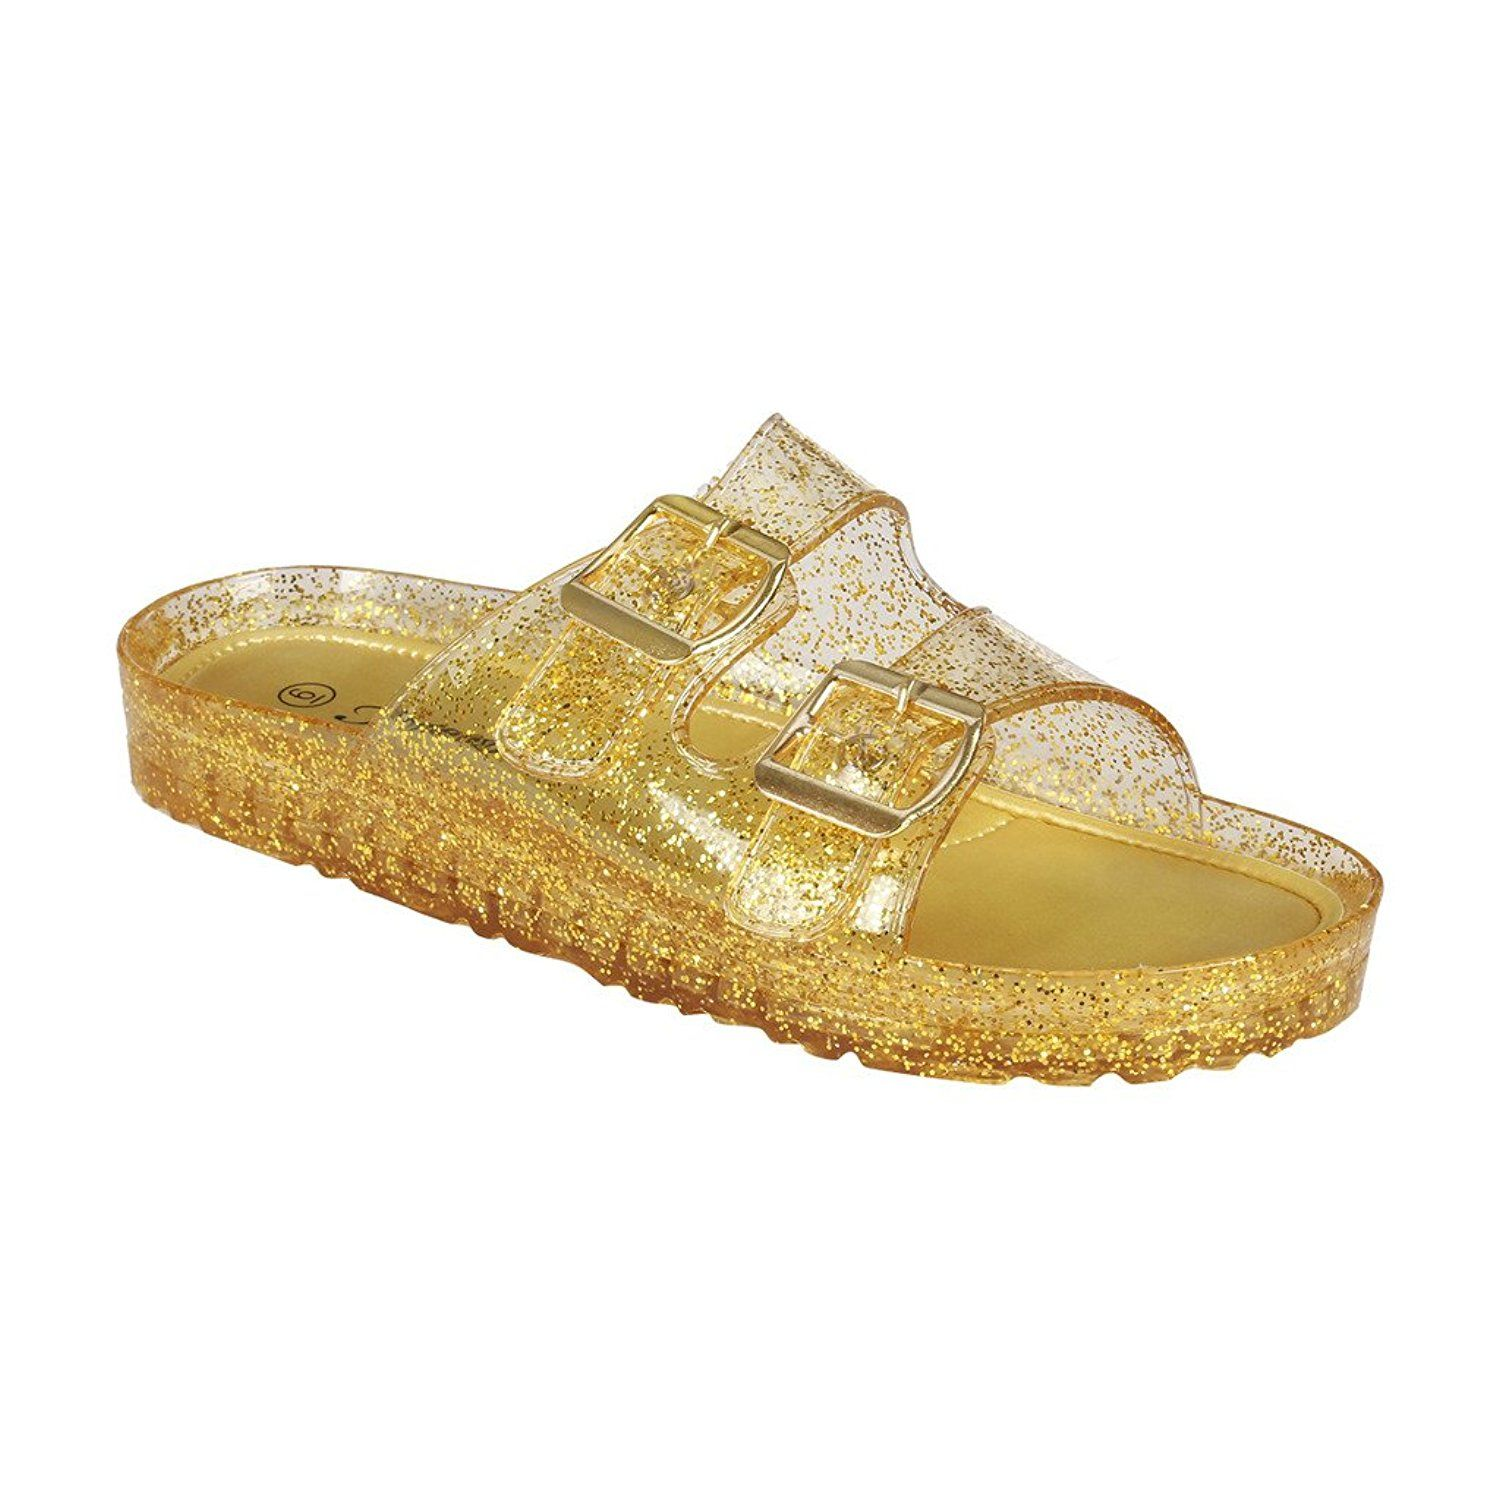 cbddc40f1 Coshare Women s Fashion Birkenstock-style Buckle Slides Arizona Soft  Footbed Sandals -- You can get more details here - Jelly Sandals